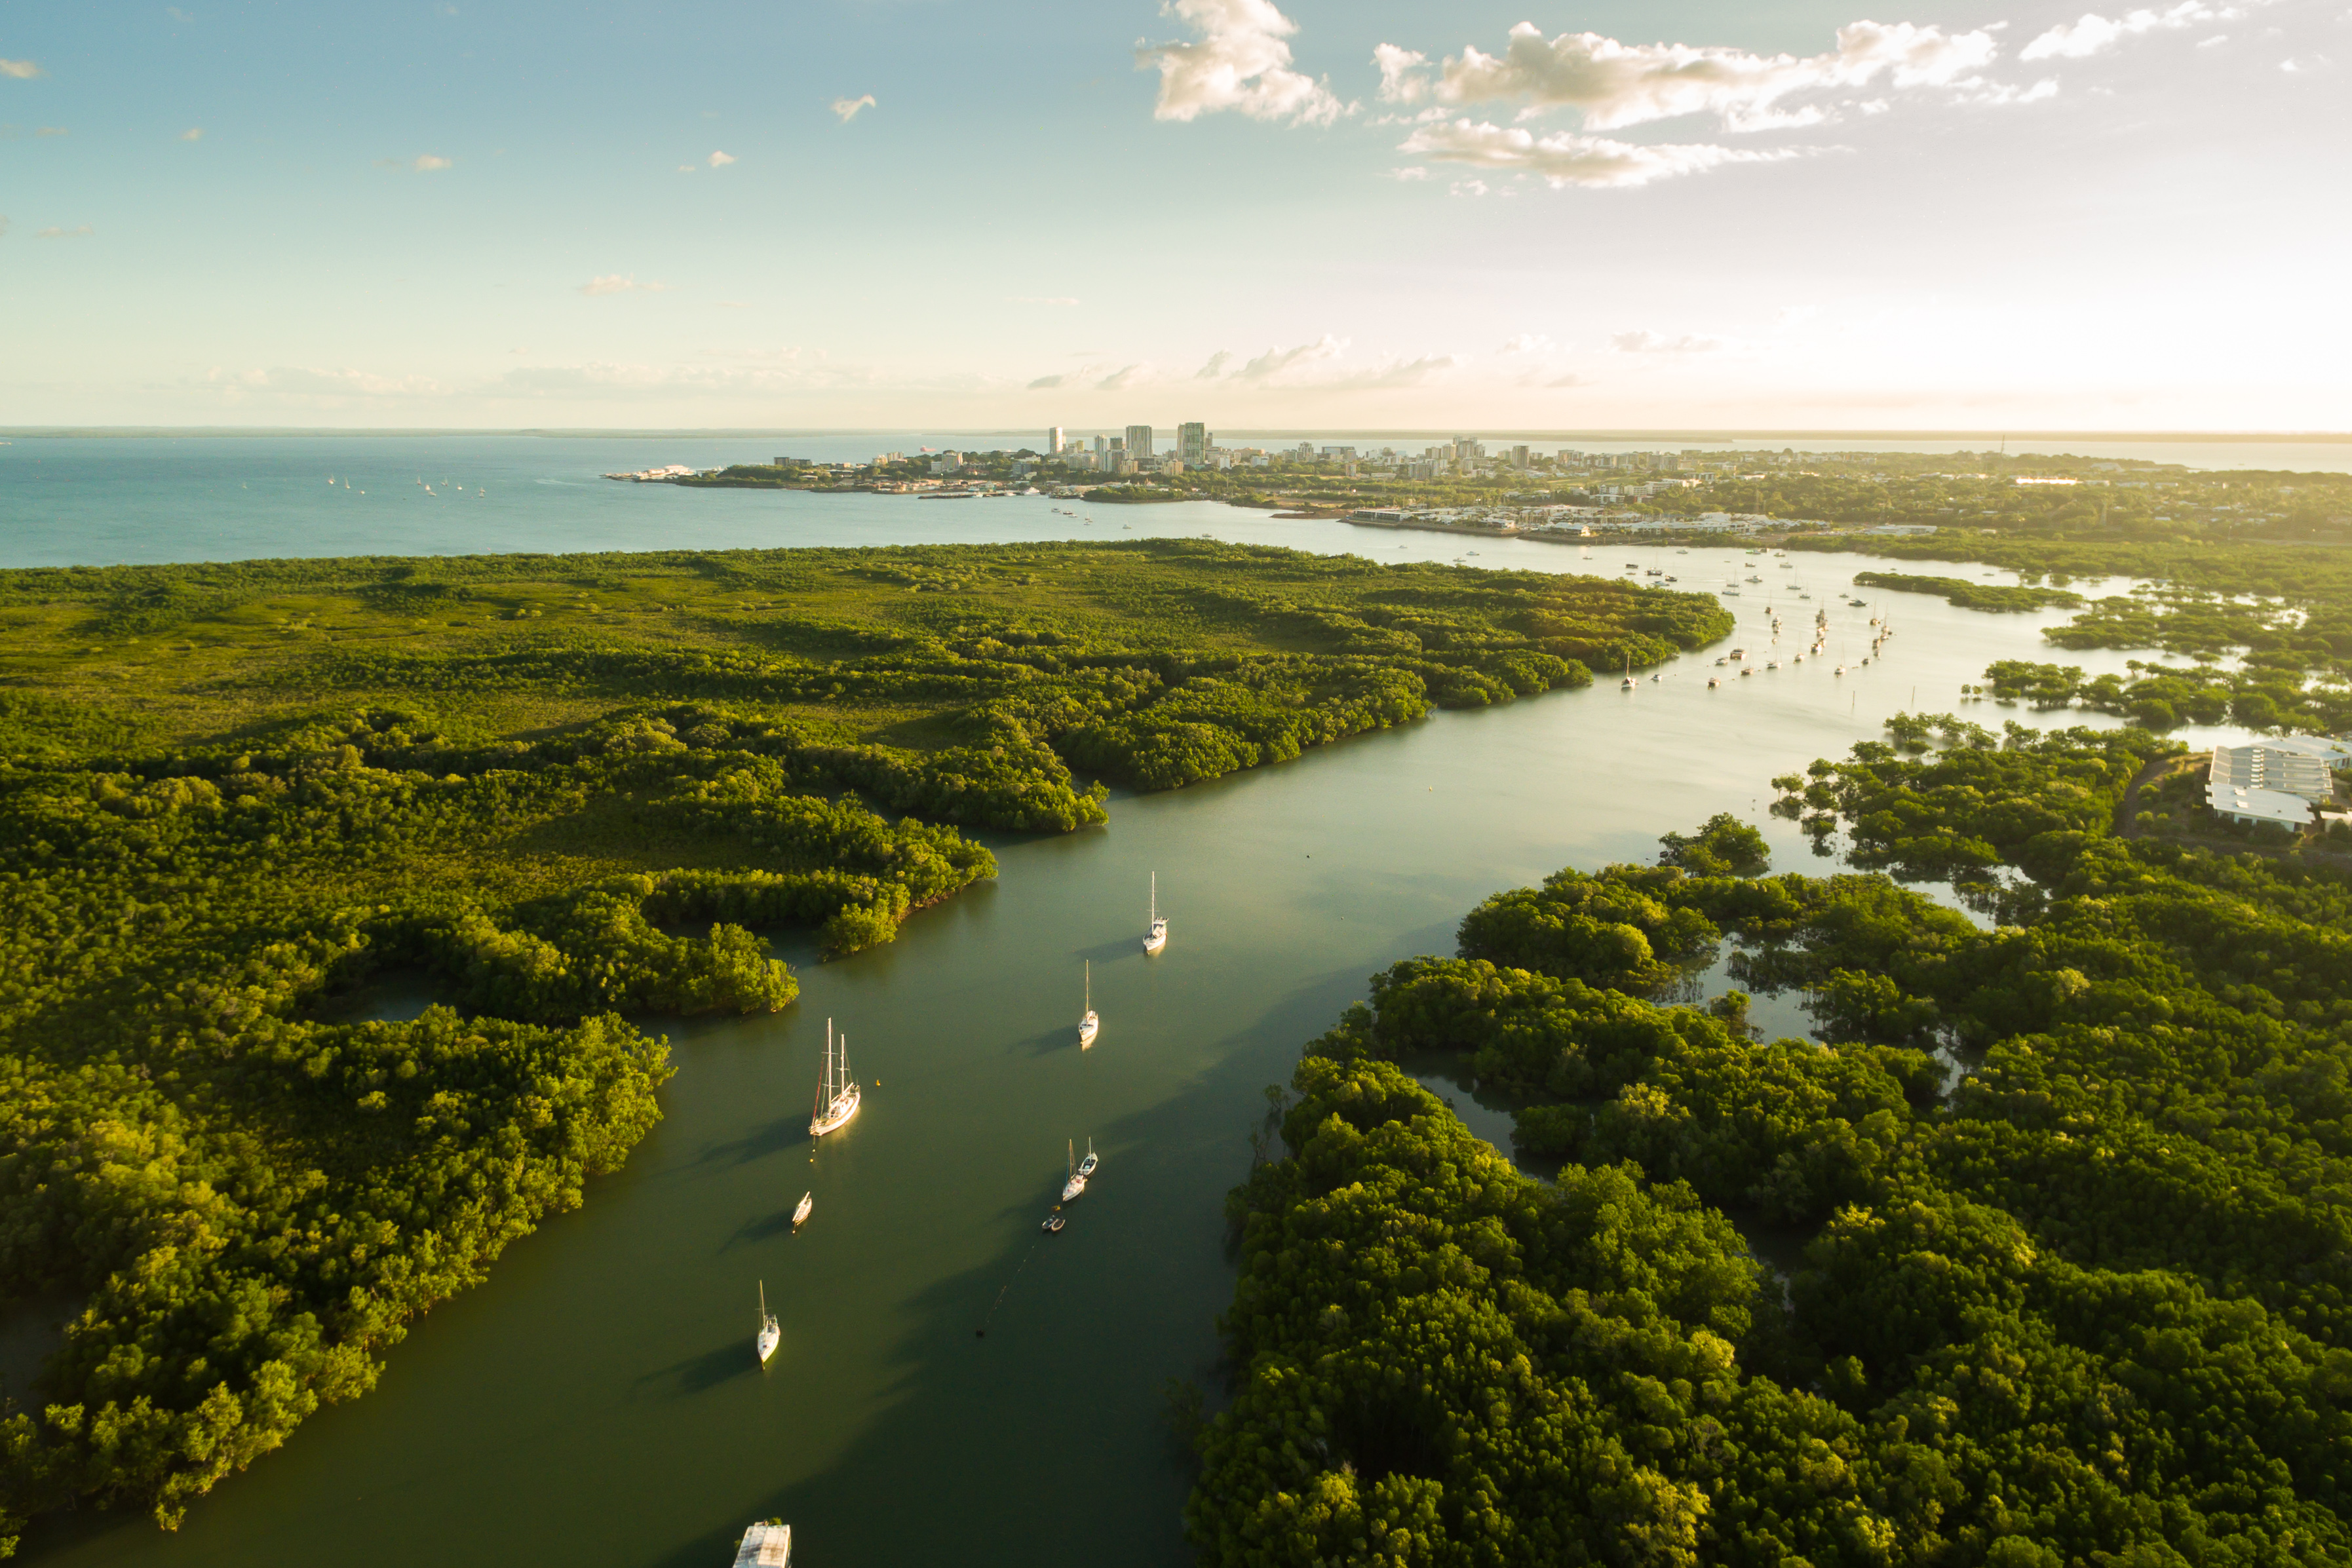 Aerial-Drone-Photography-Darwin-Gary-Annett-3